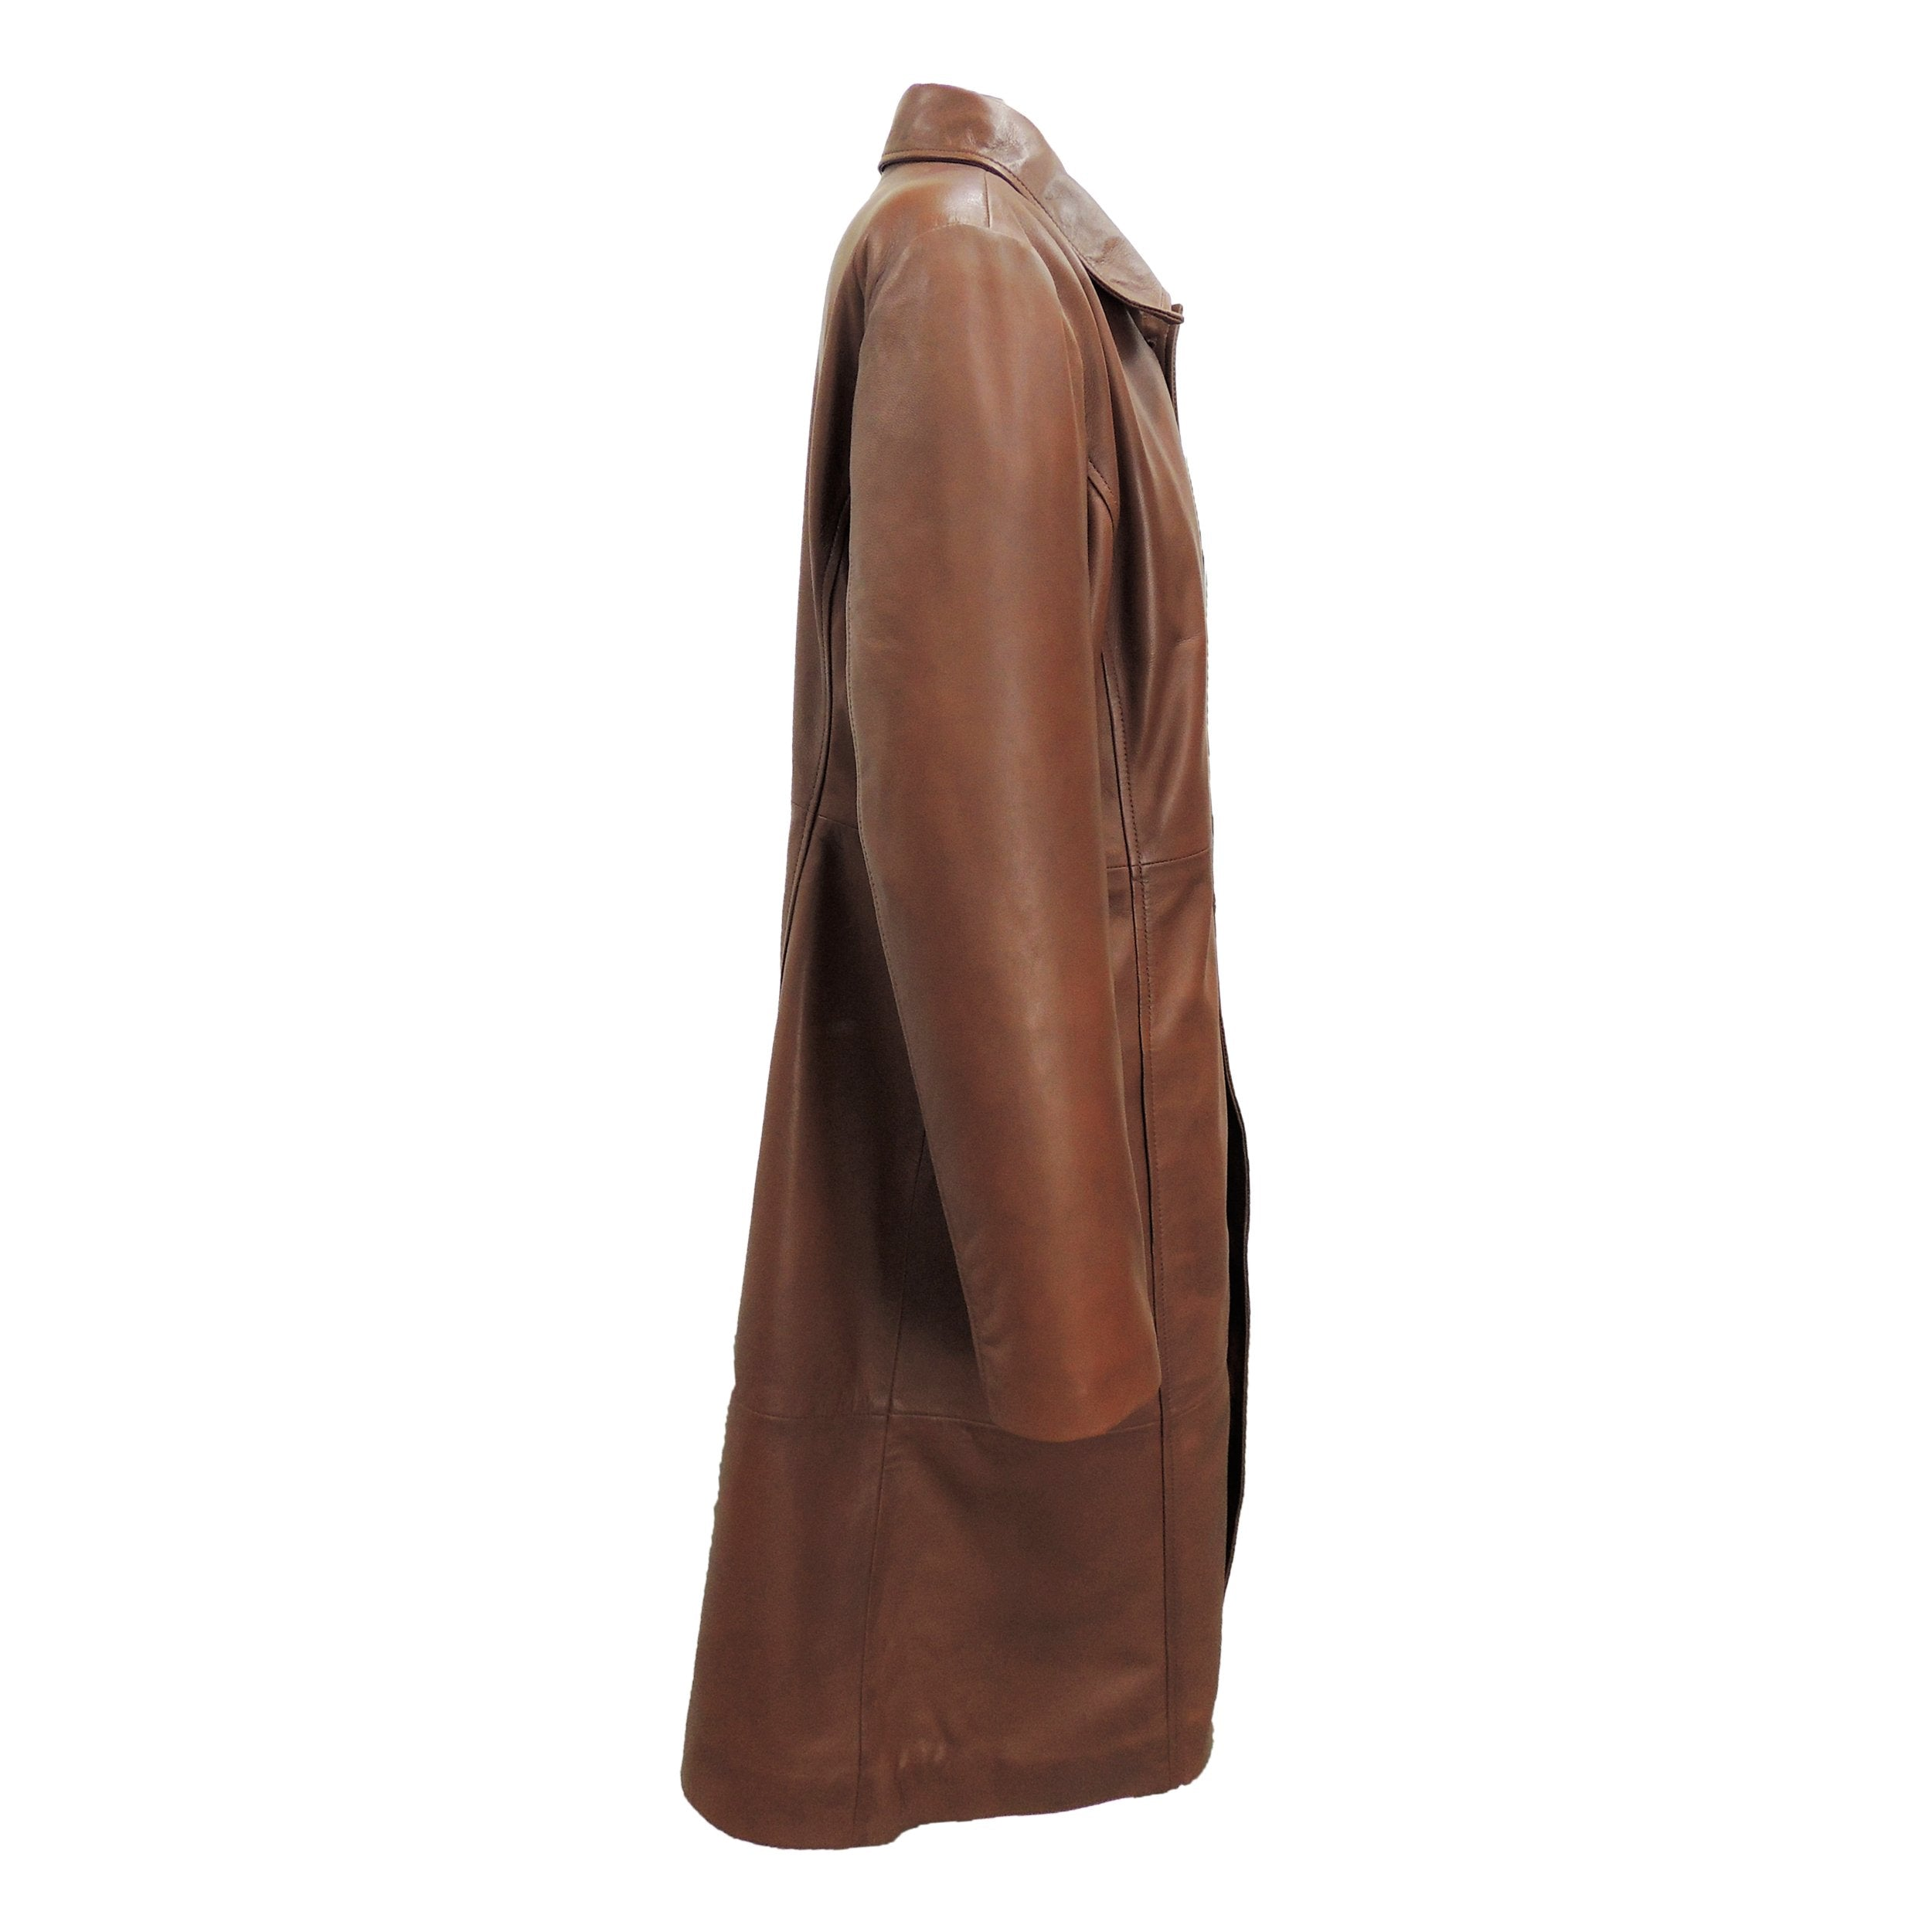 Womens Leather Coat - Womens Elegant Brown Leather Coat